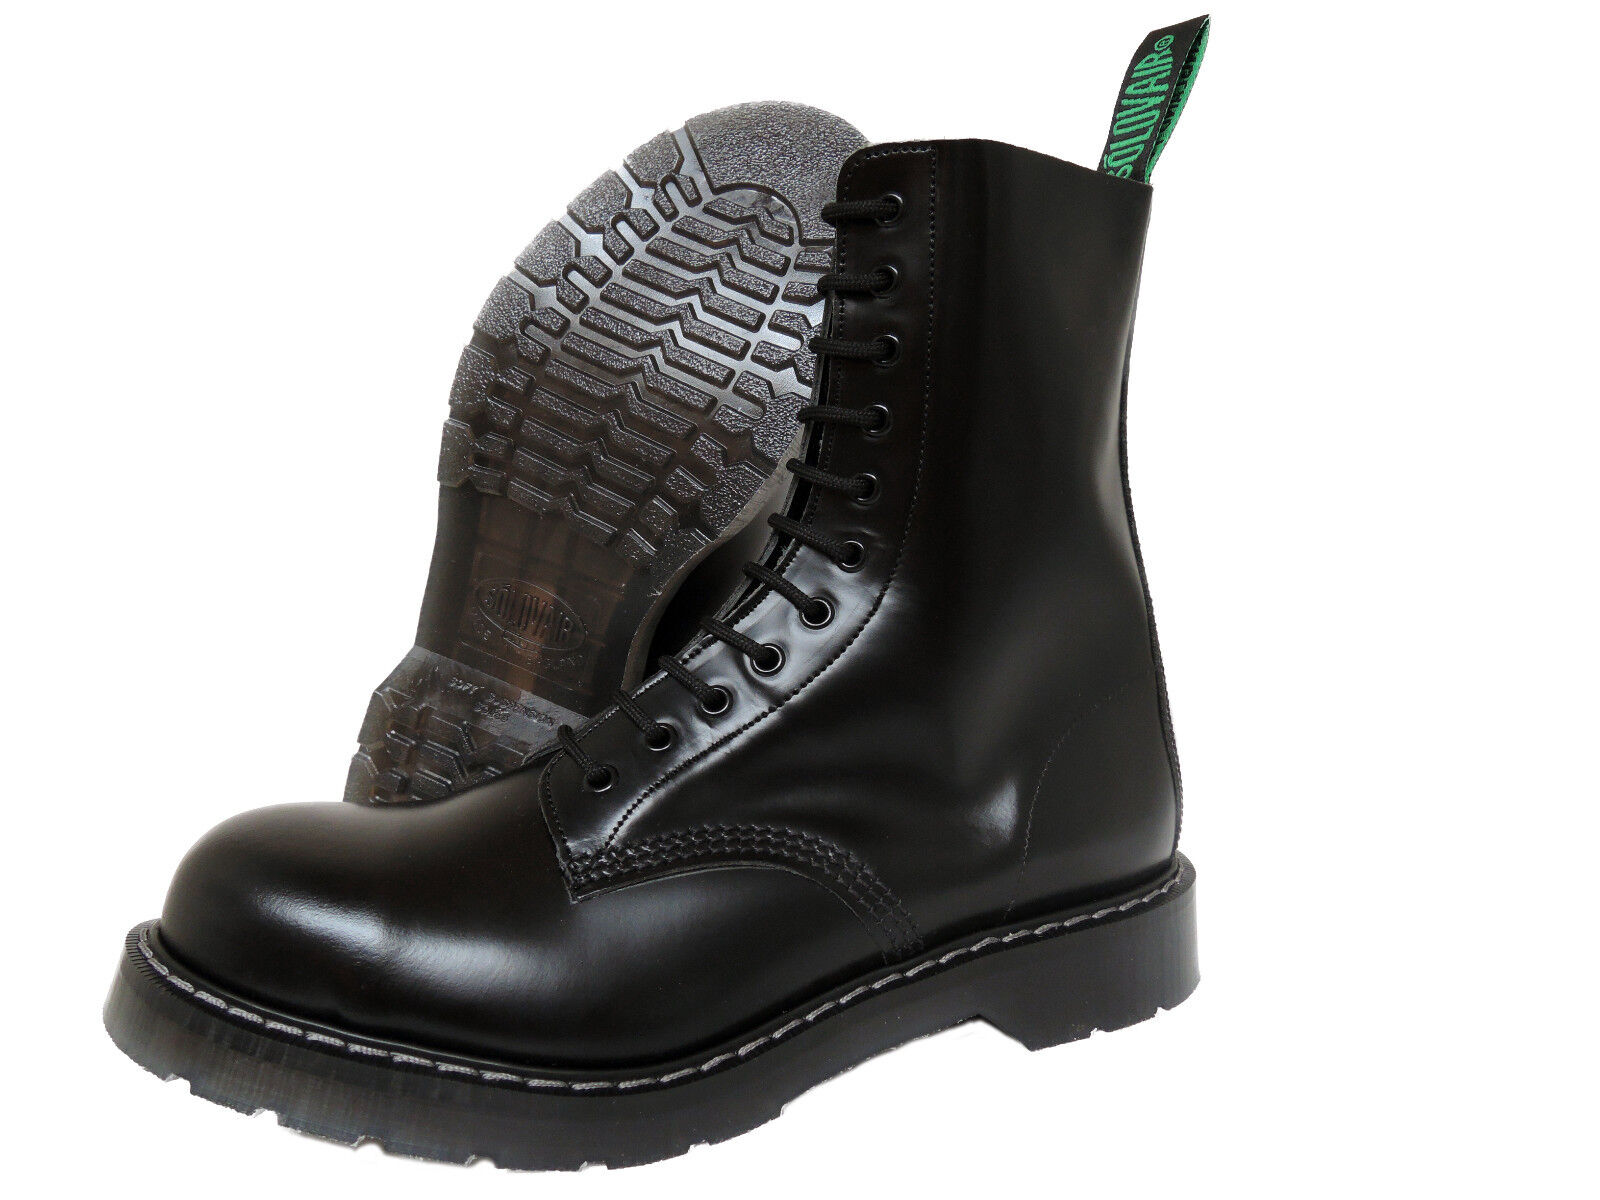 Solovair NPS Hand Made Toe in England Black Steel Toe Made Boots Stiefel Schwarz 44e386